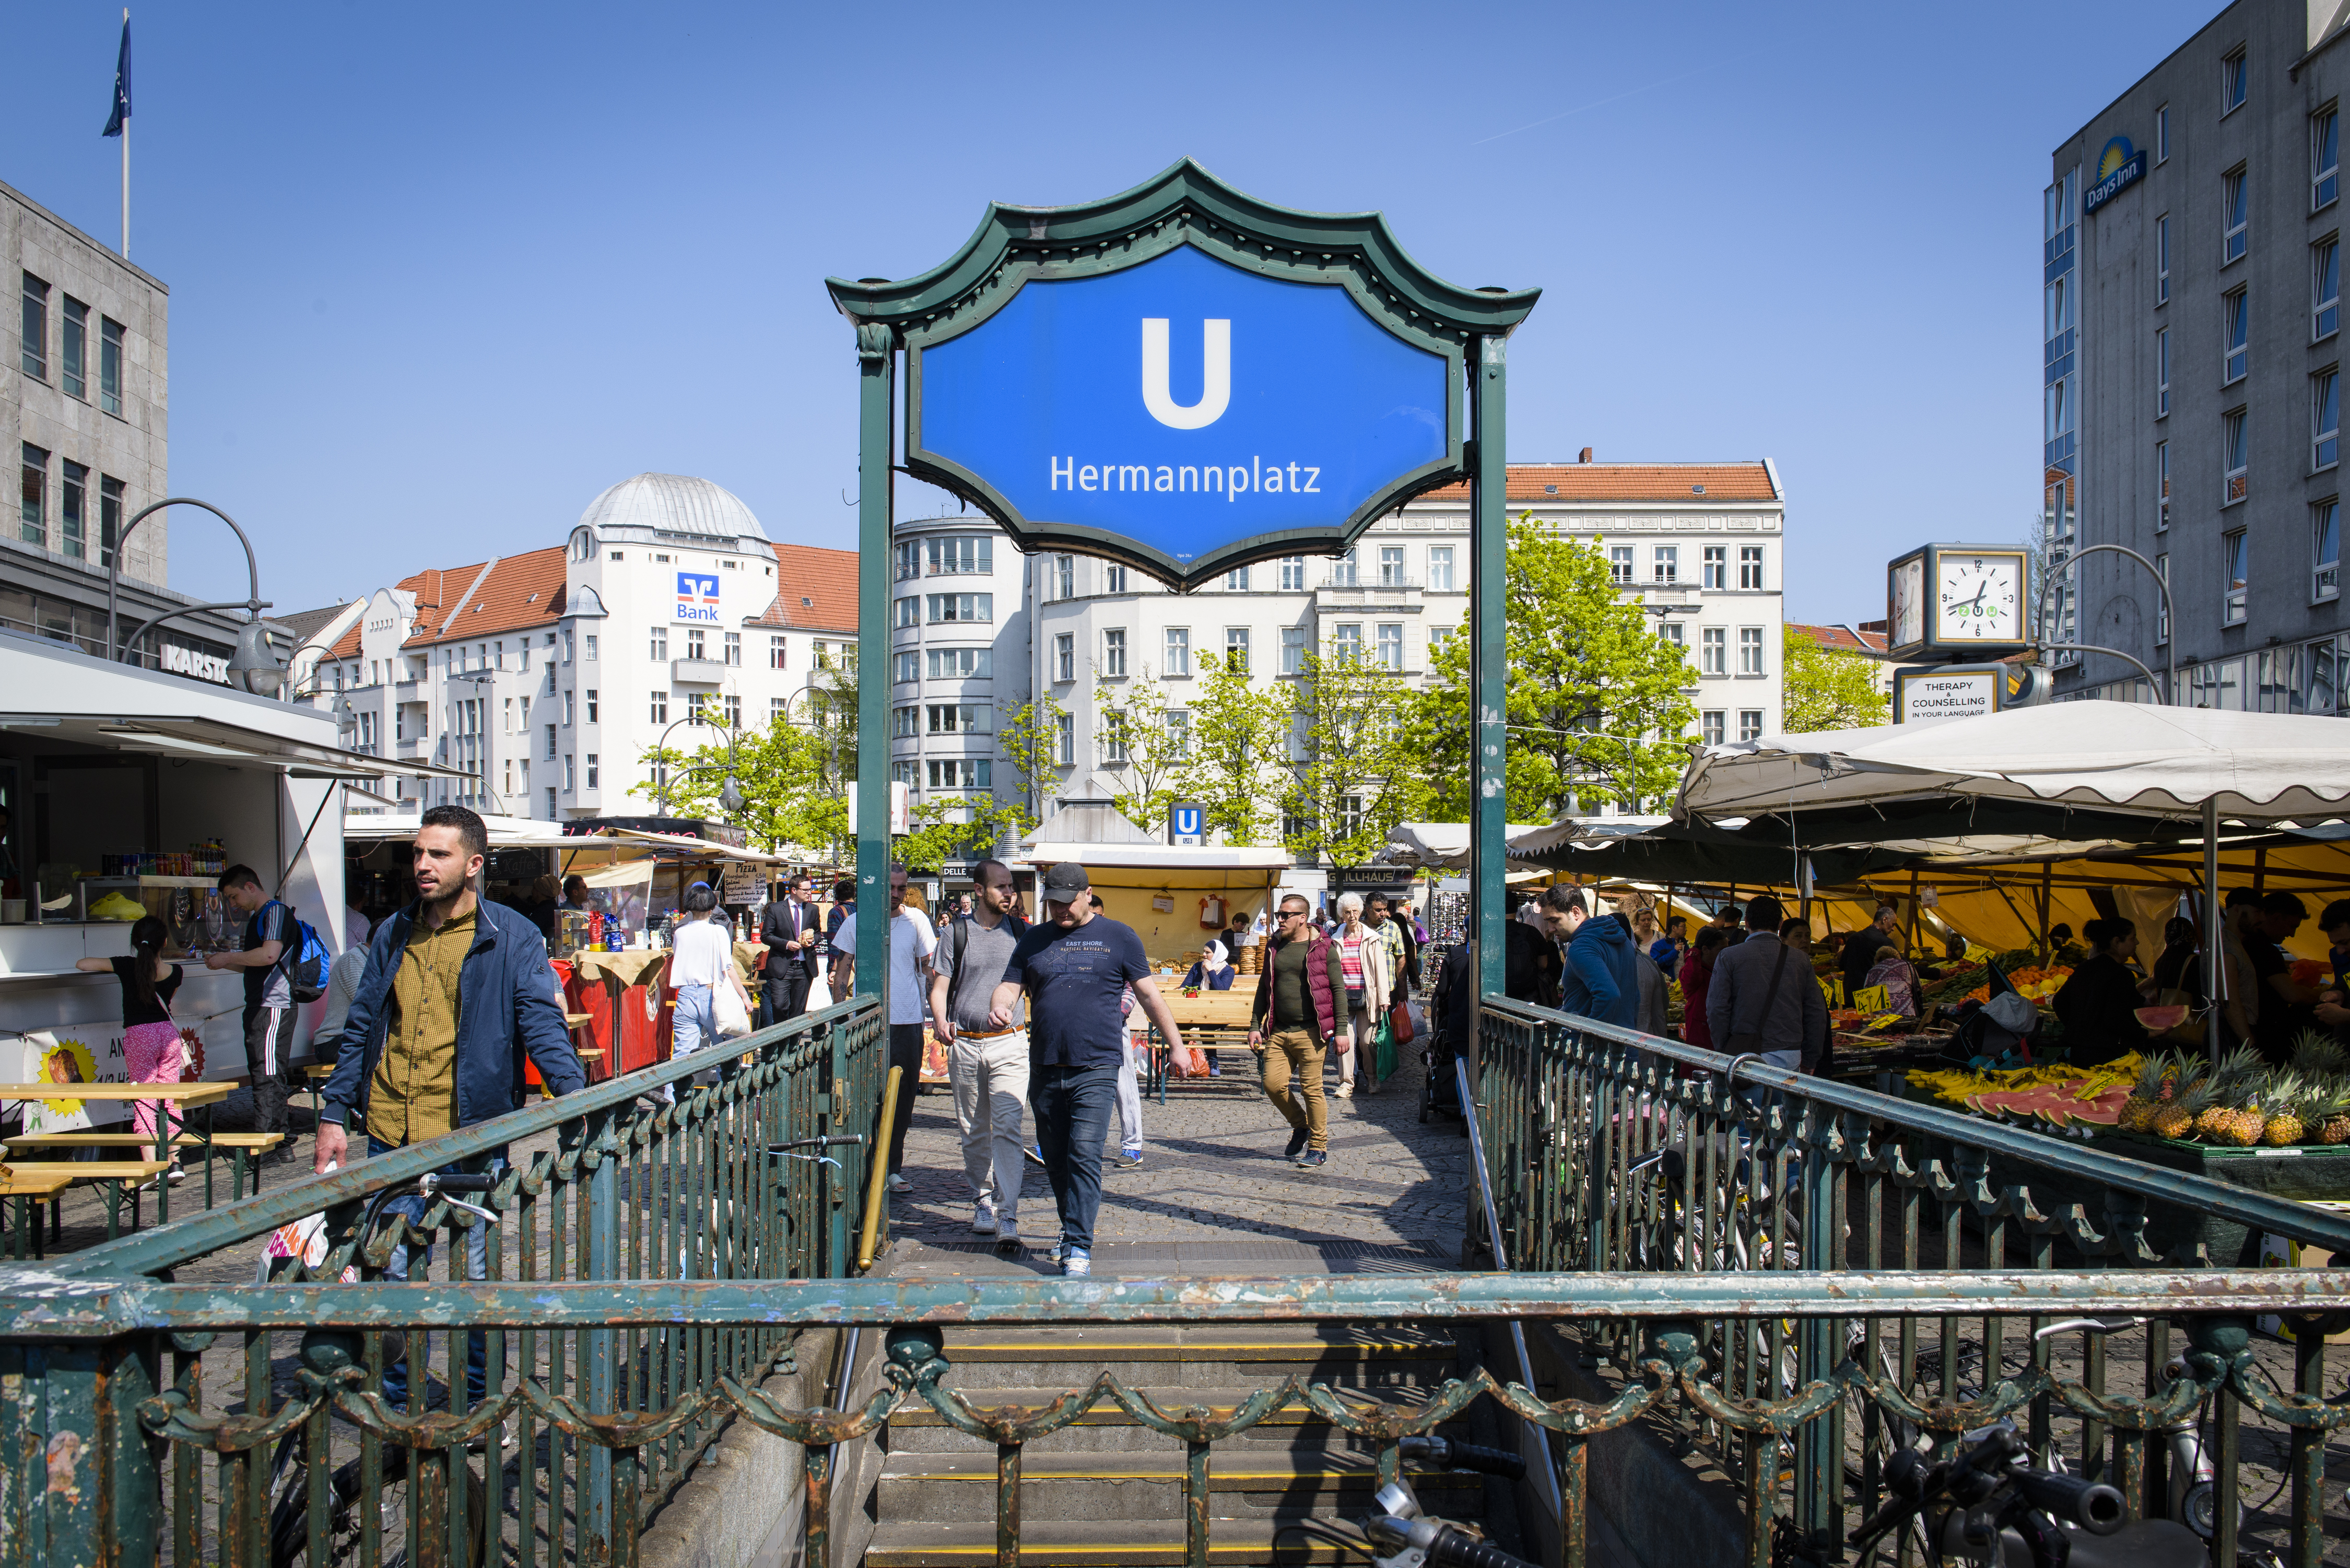 The weekly street market in Berlin Hermannplatz where Radwan often sets his truck up.